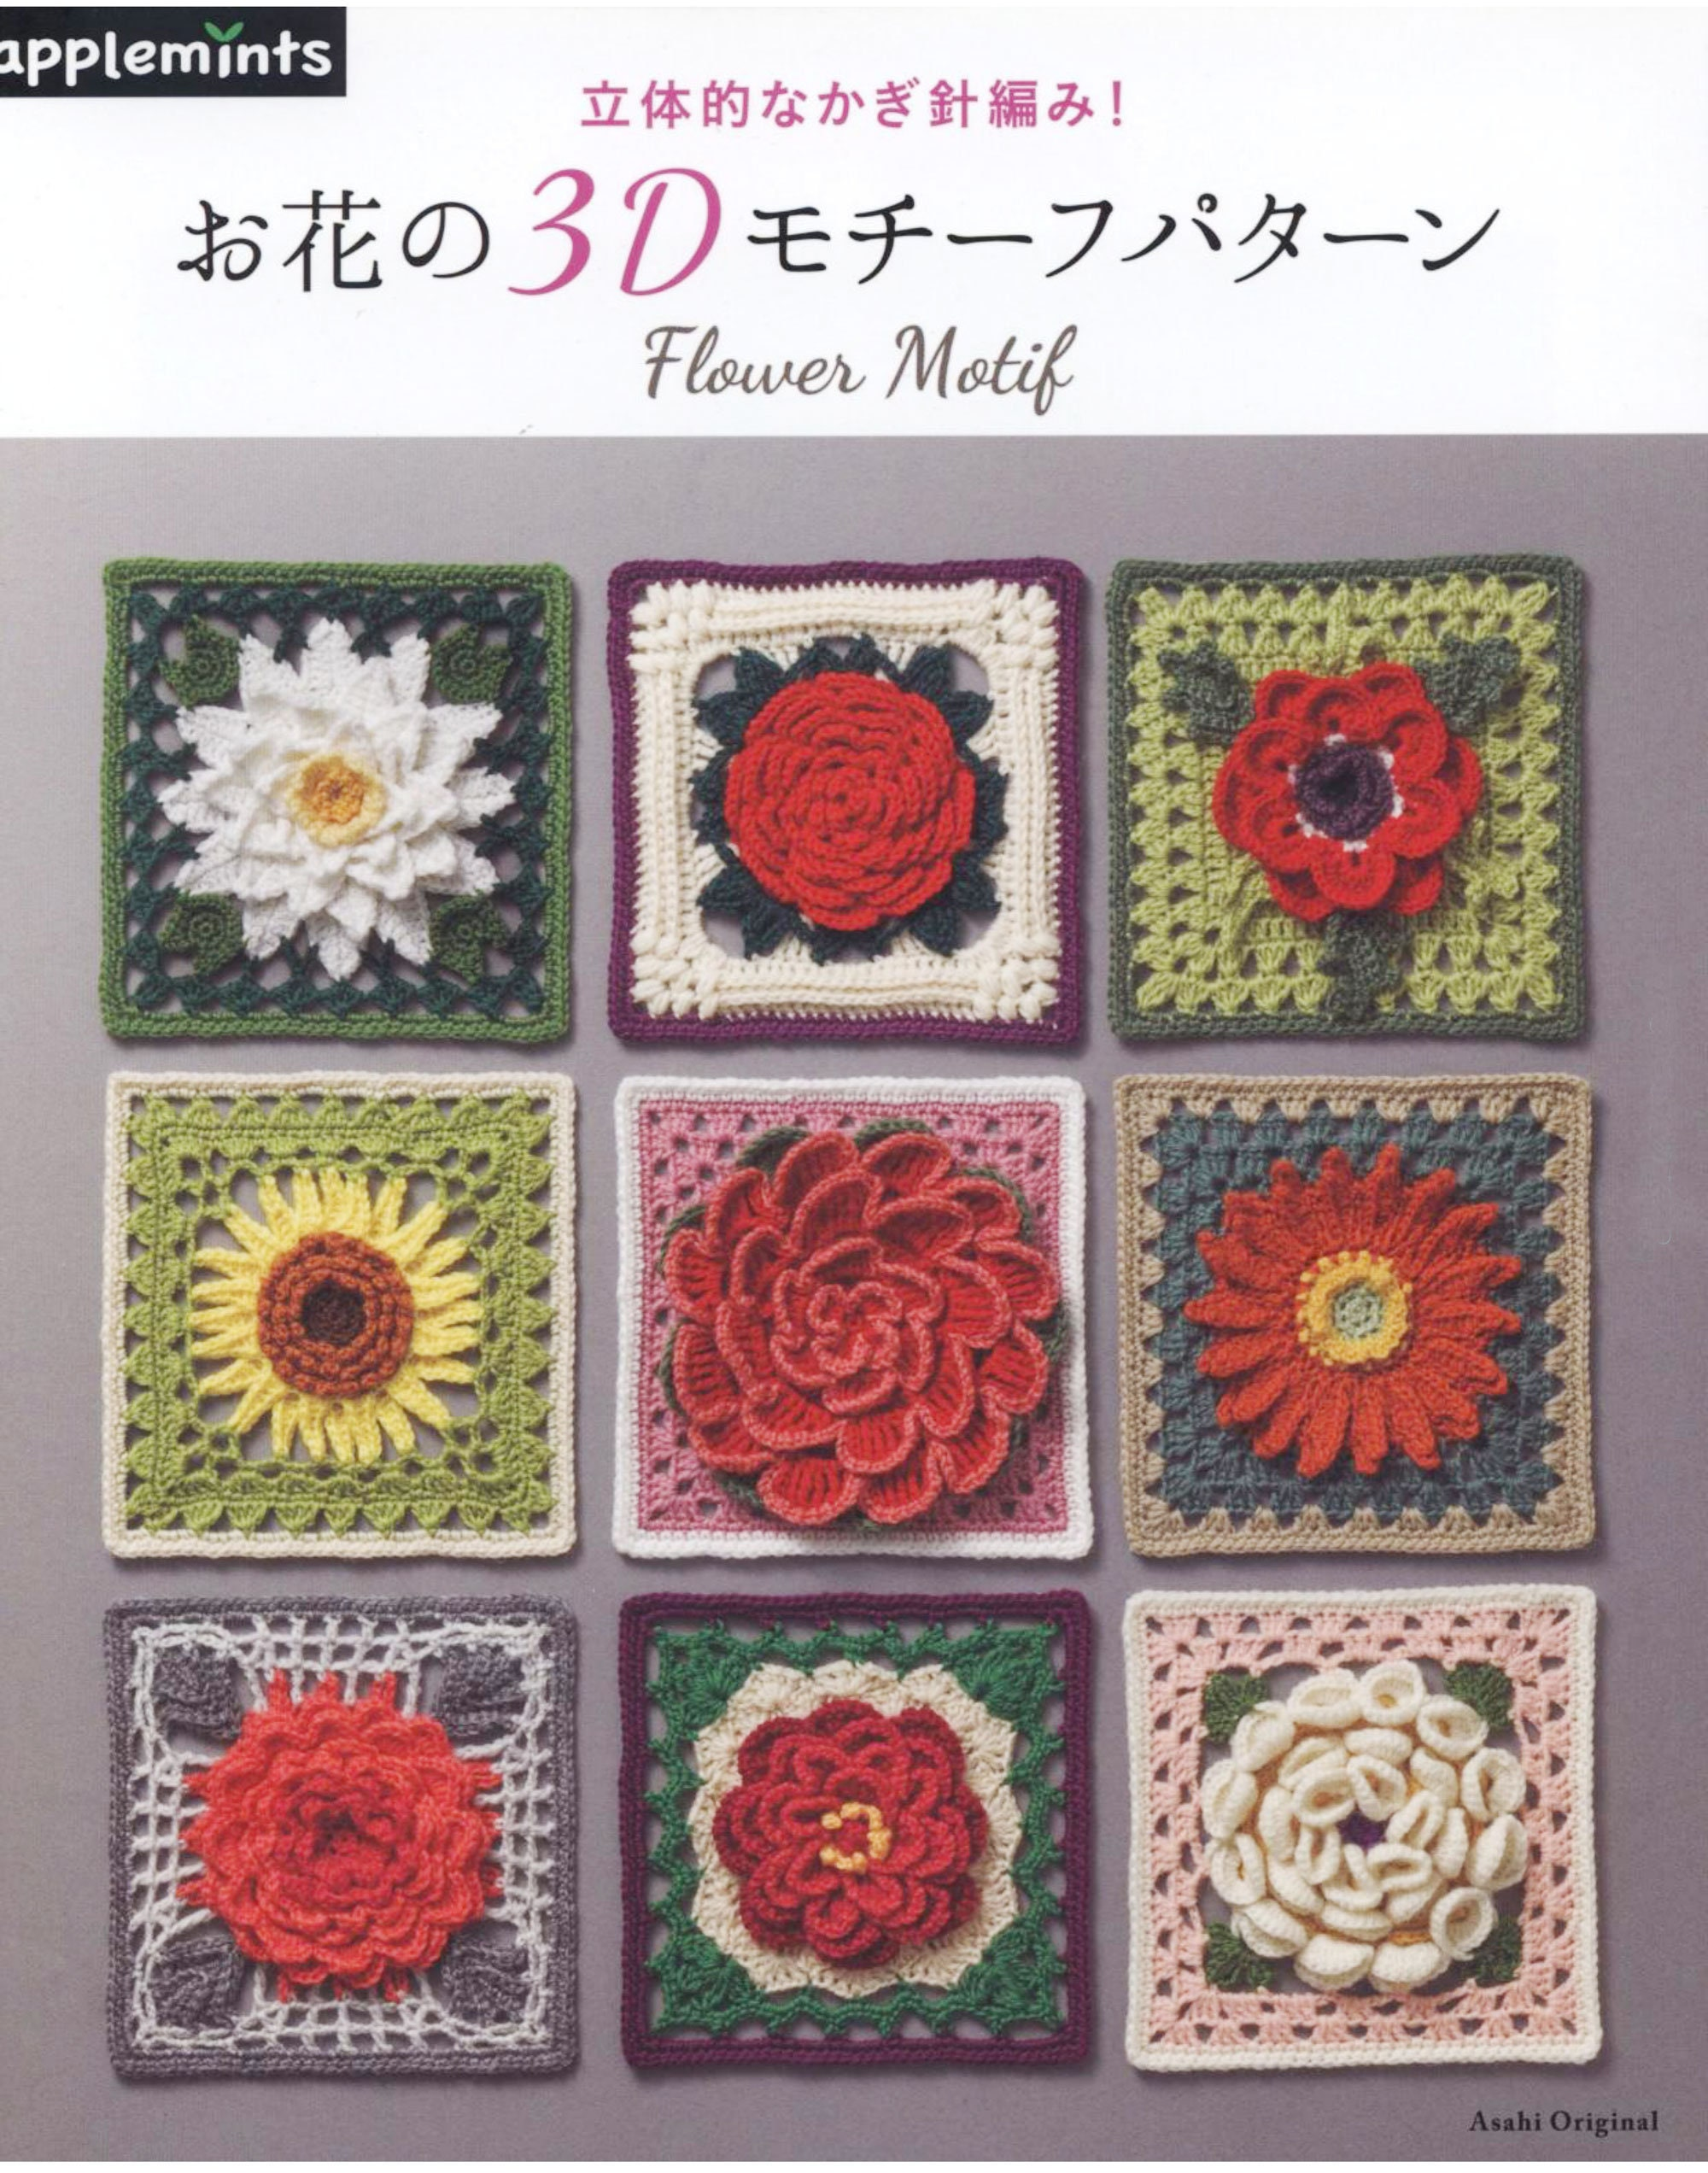 3d Flower Motif Crochet Patterns Japanese Crochet Ebook Etsy